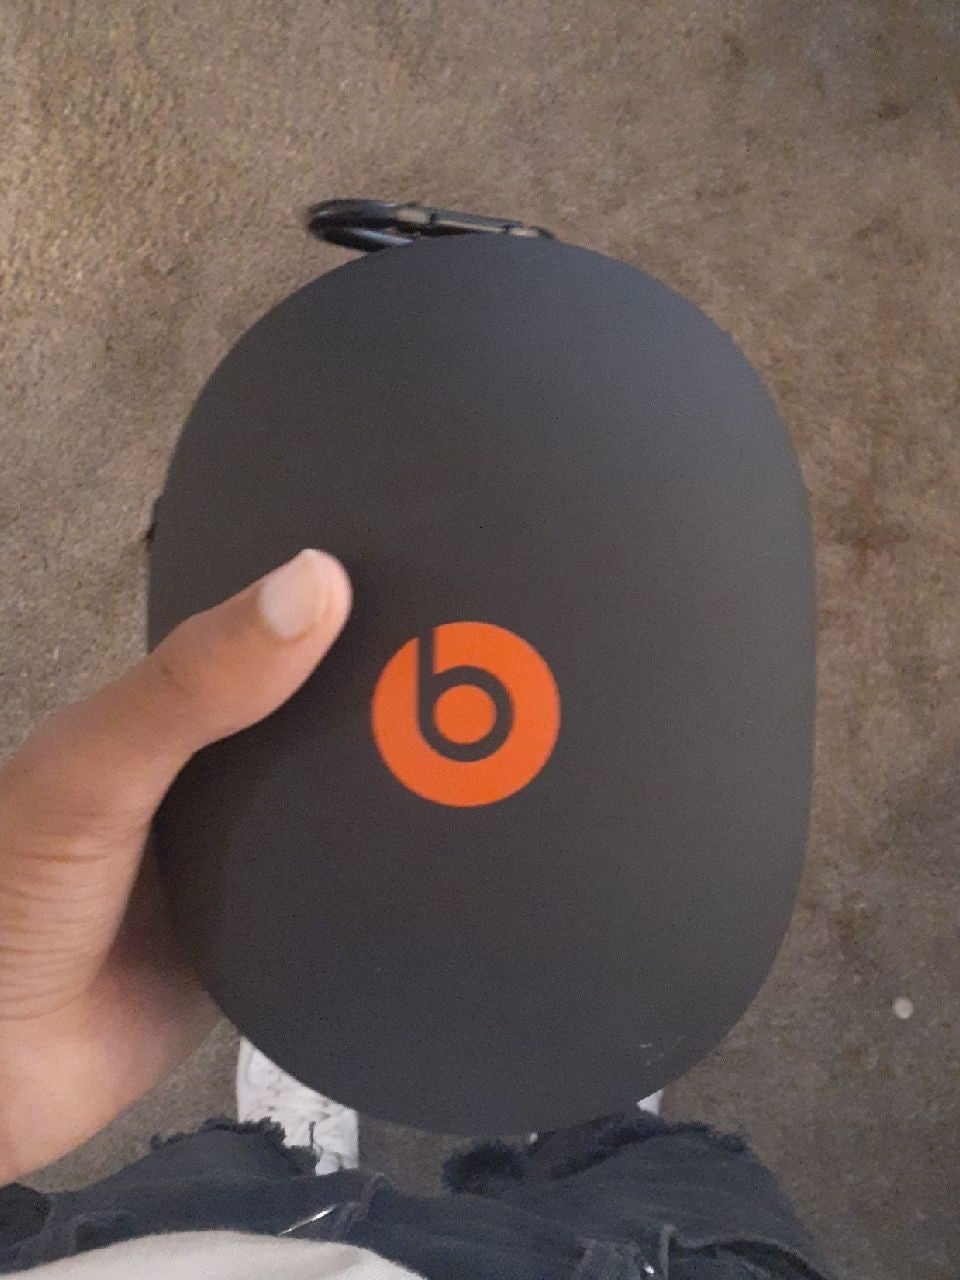 Beats headset case